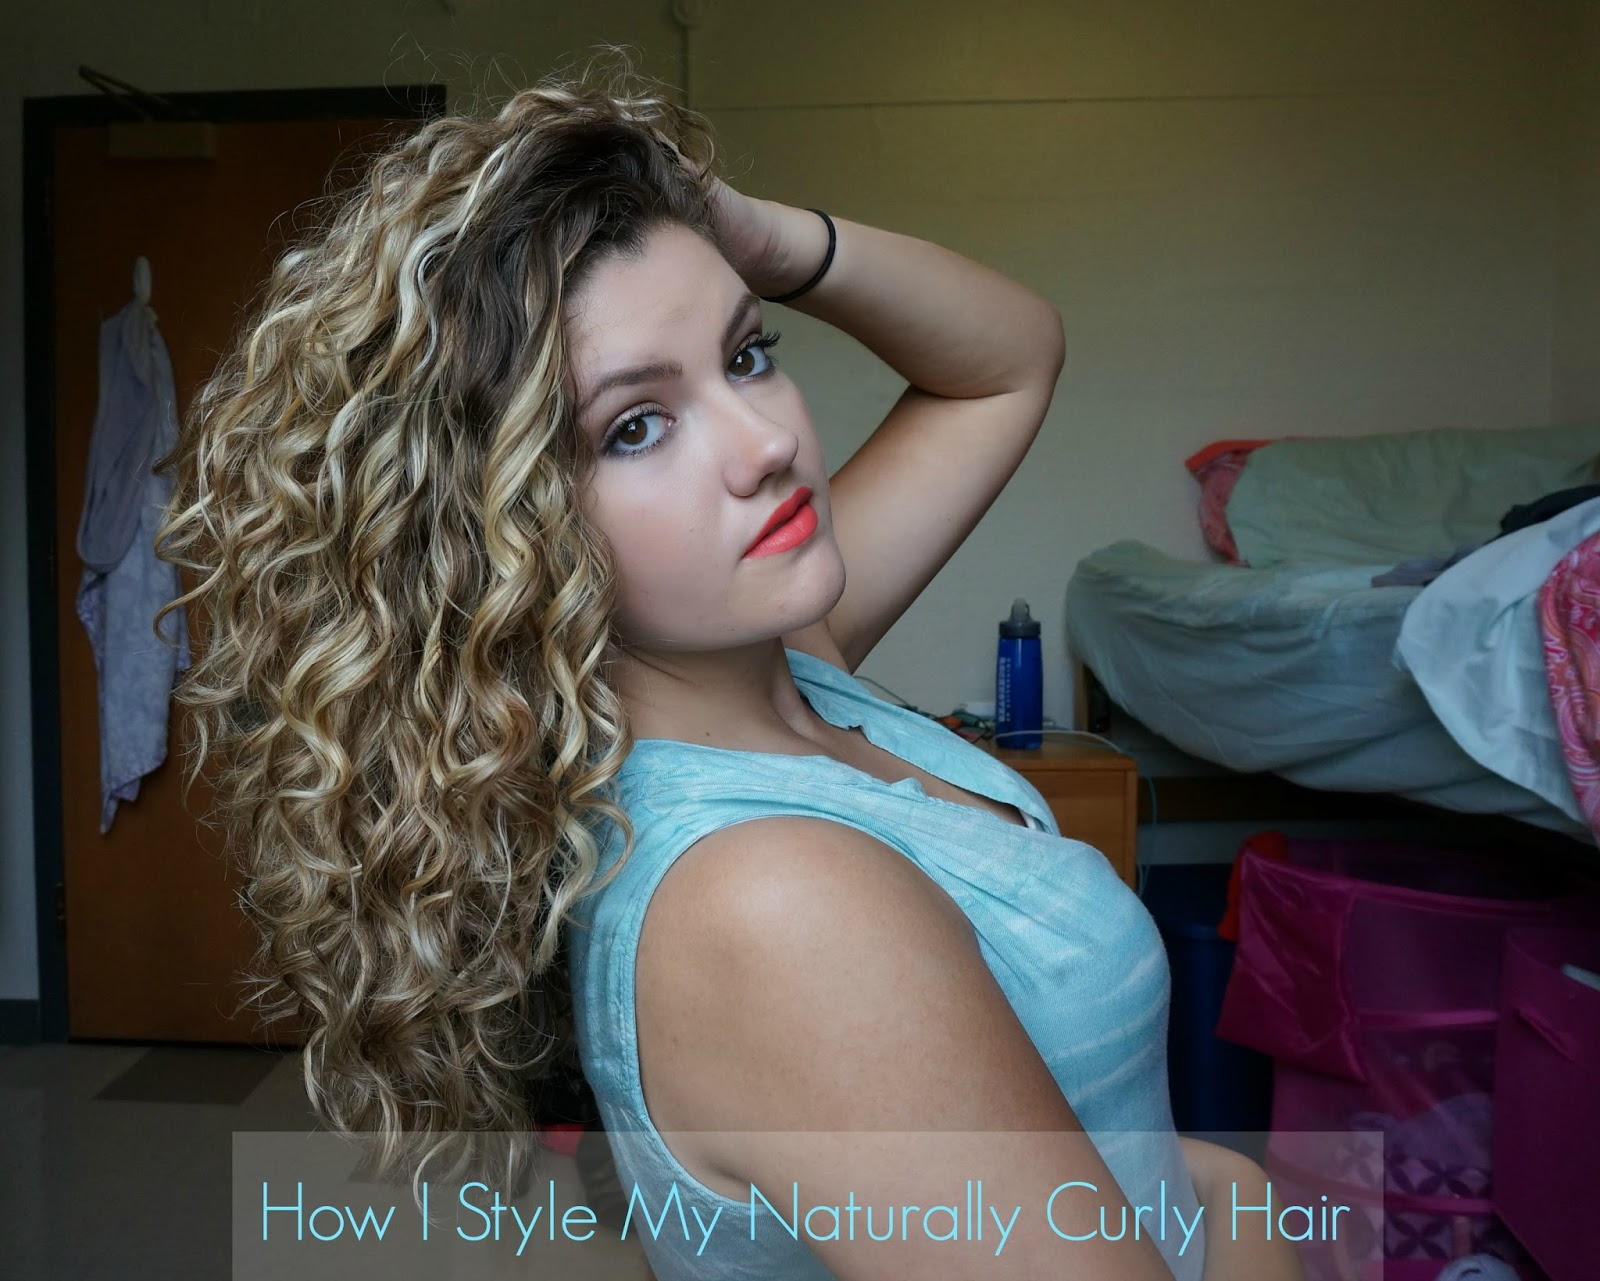 how can i style my curly hair ganey how i style my naturally curly hair 5728